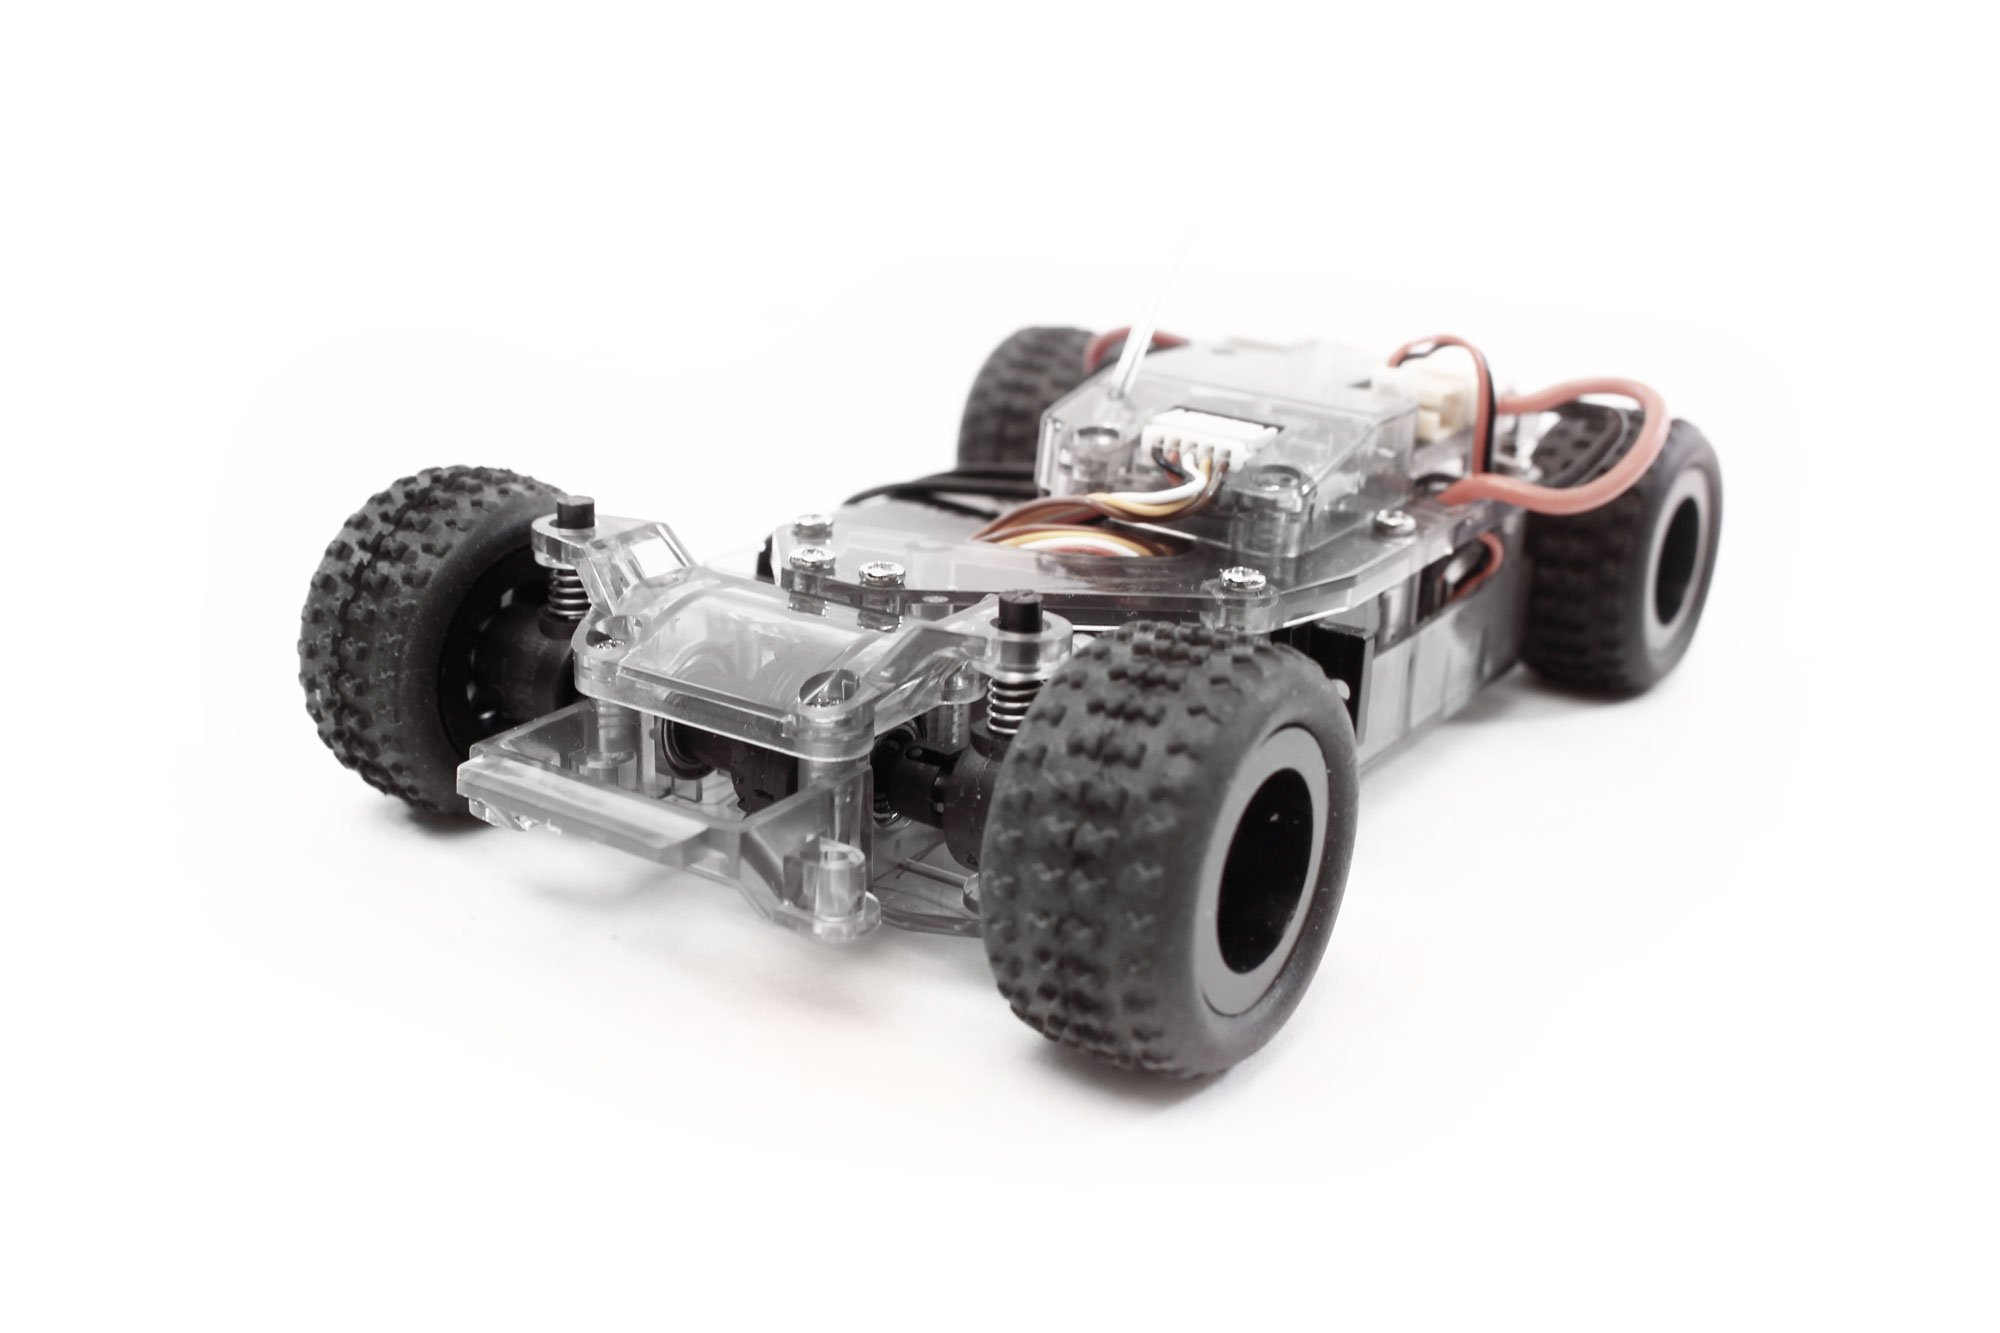 Rage RC Mini Q DIY Kit - Chassis Complete